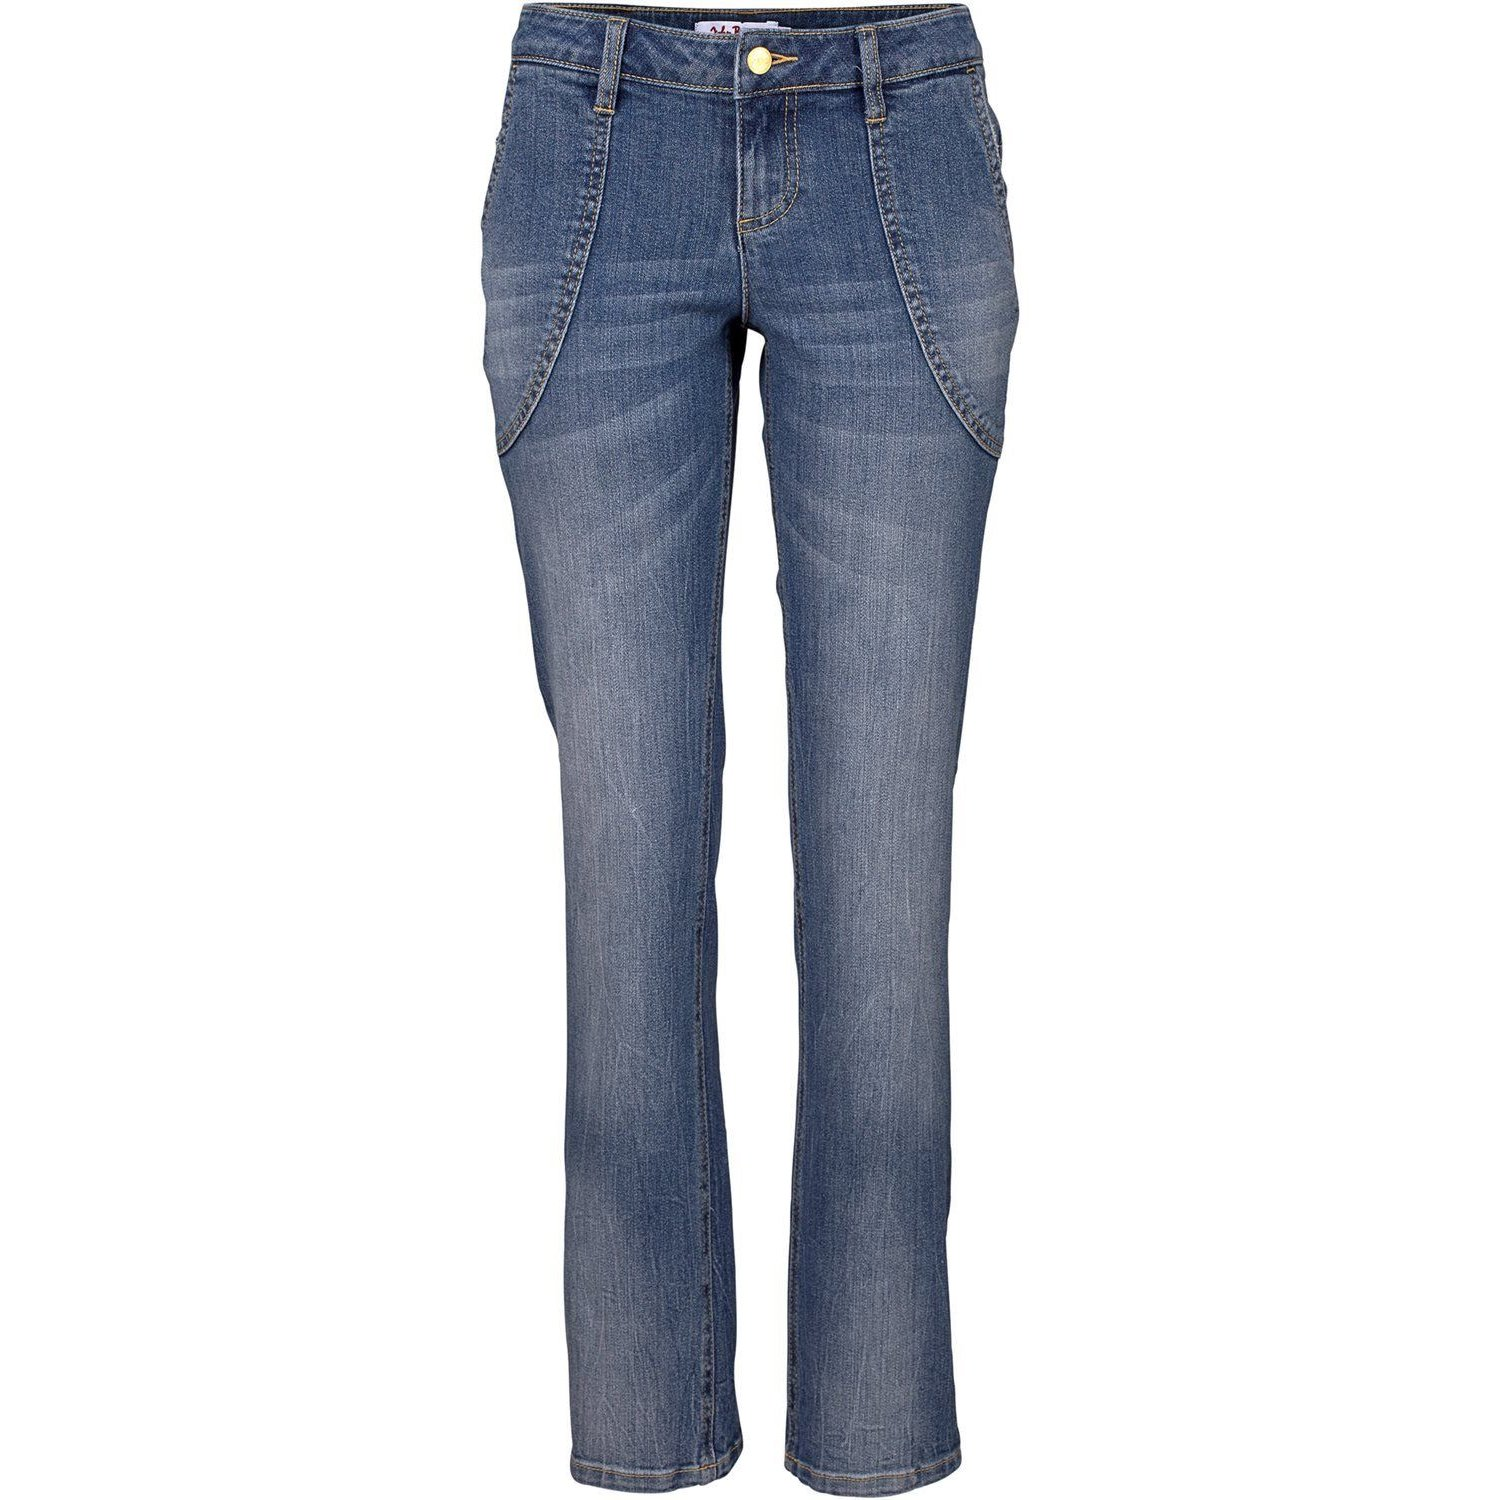 Damen Stretch Jeans STRAIGHT L-Größe, in Blau